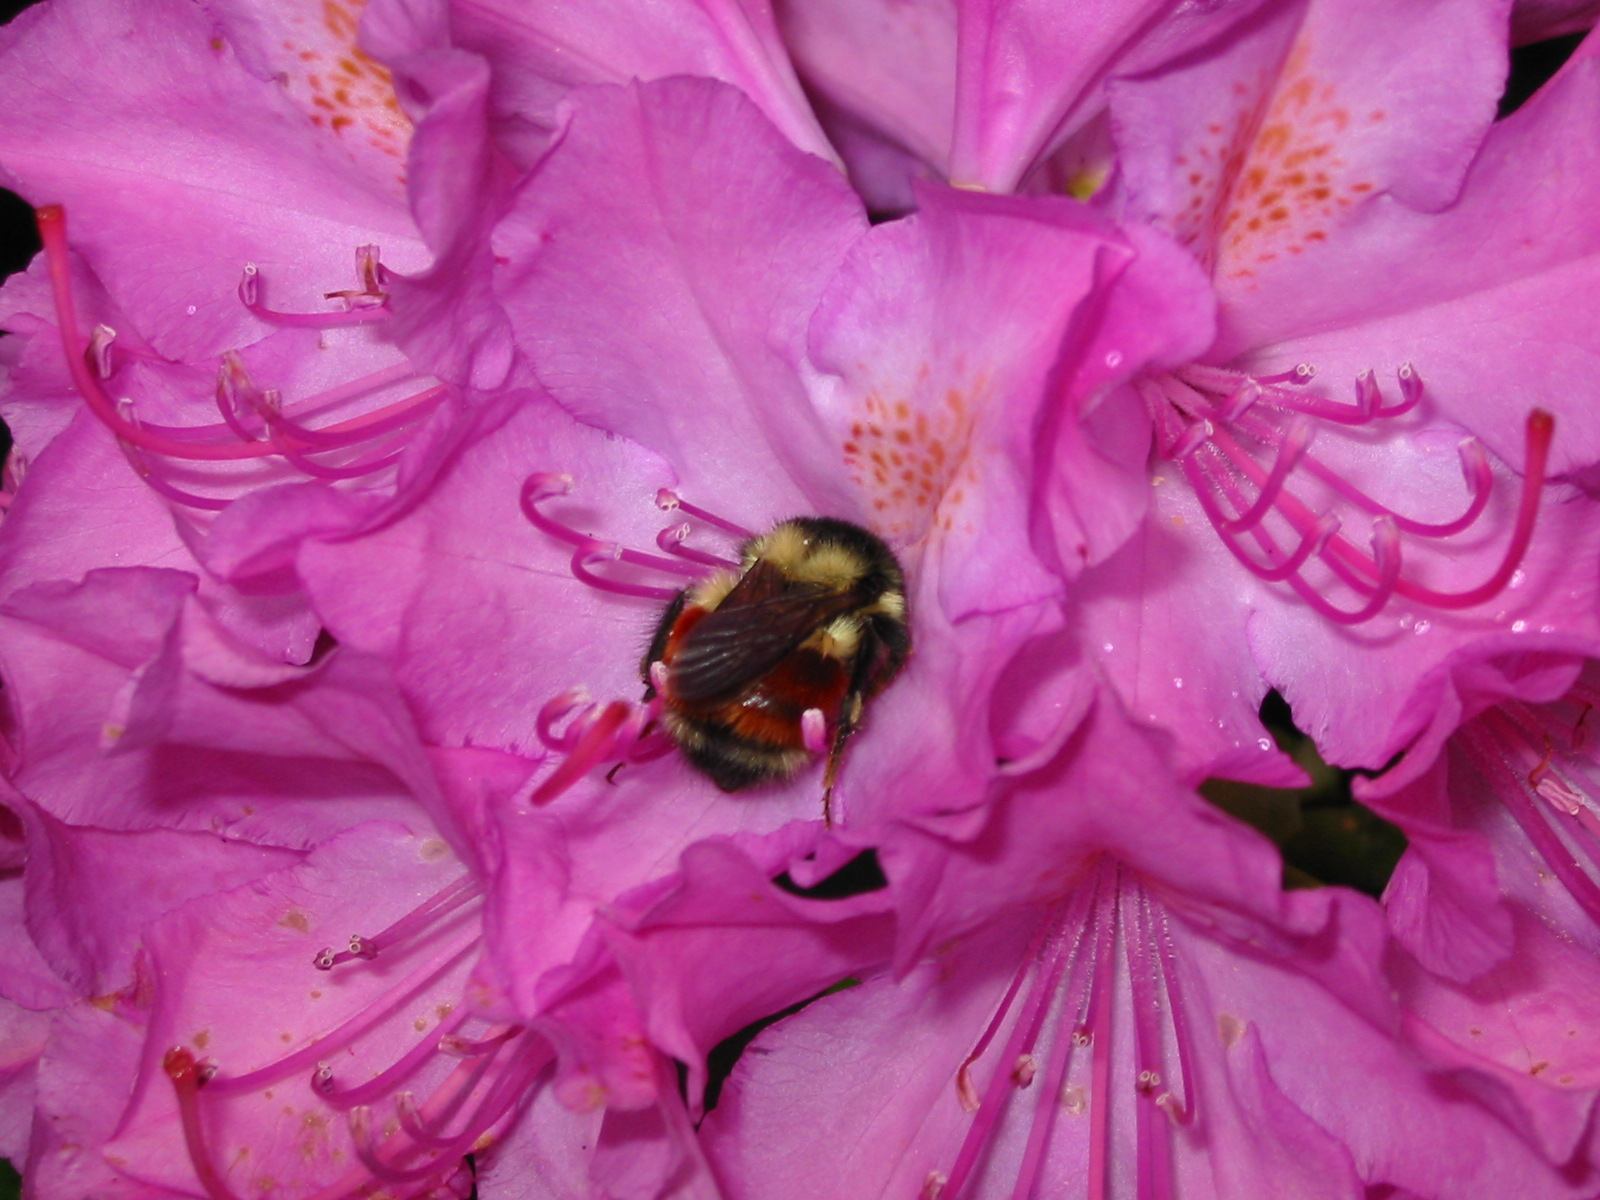 A fuzzy bumble bee is snuggled tight in a a pink rhododendron flower.